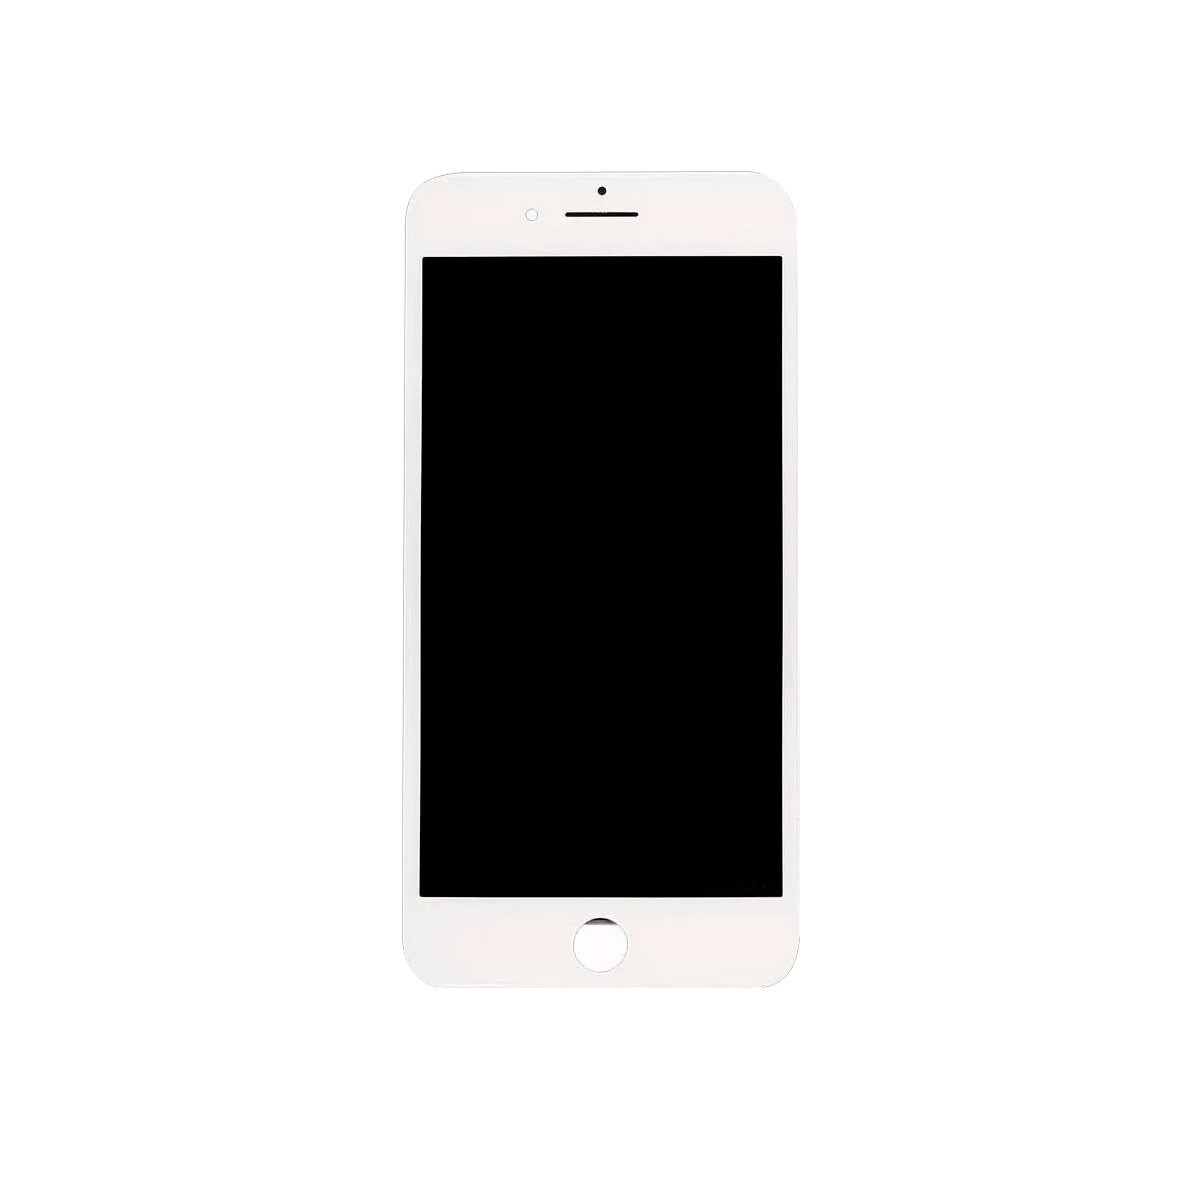 Tela Touch Display LCD Frontal - iPhone 8 8G Plus - 5.5 - AAA++